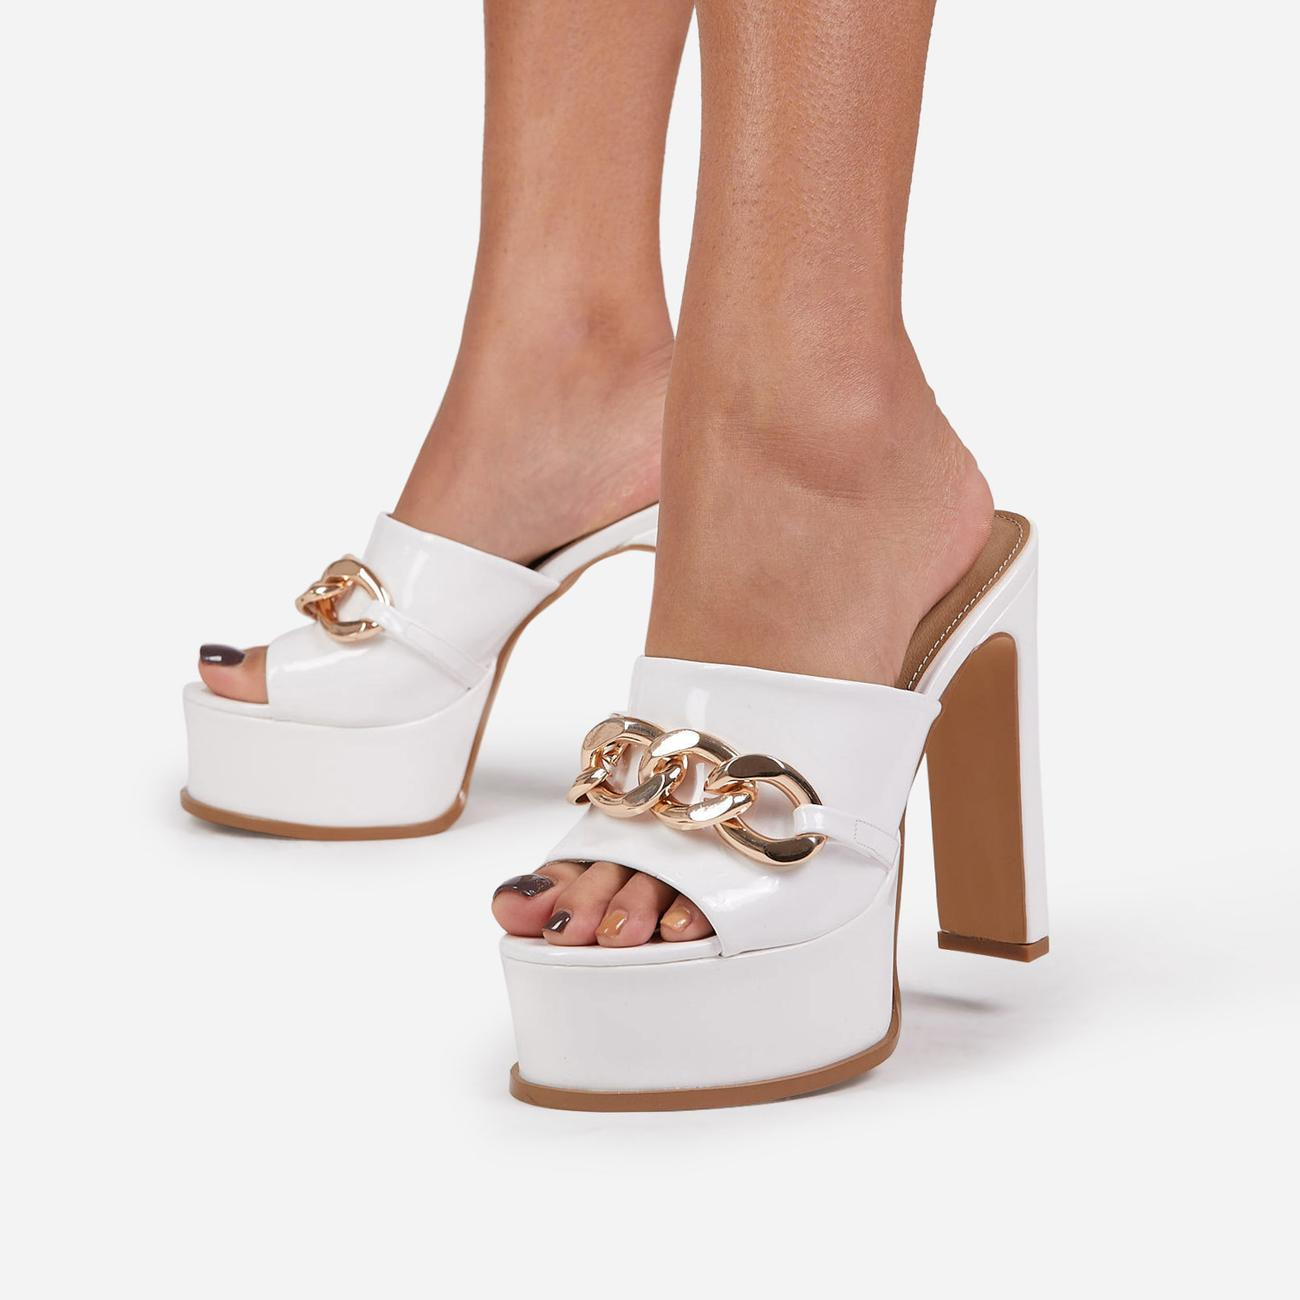 No-Chill Chain Detail Open Toe Platform Thin Block Heel Mule In White Patent Image 2